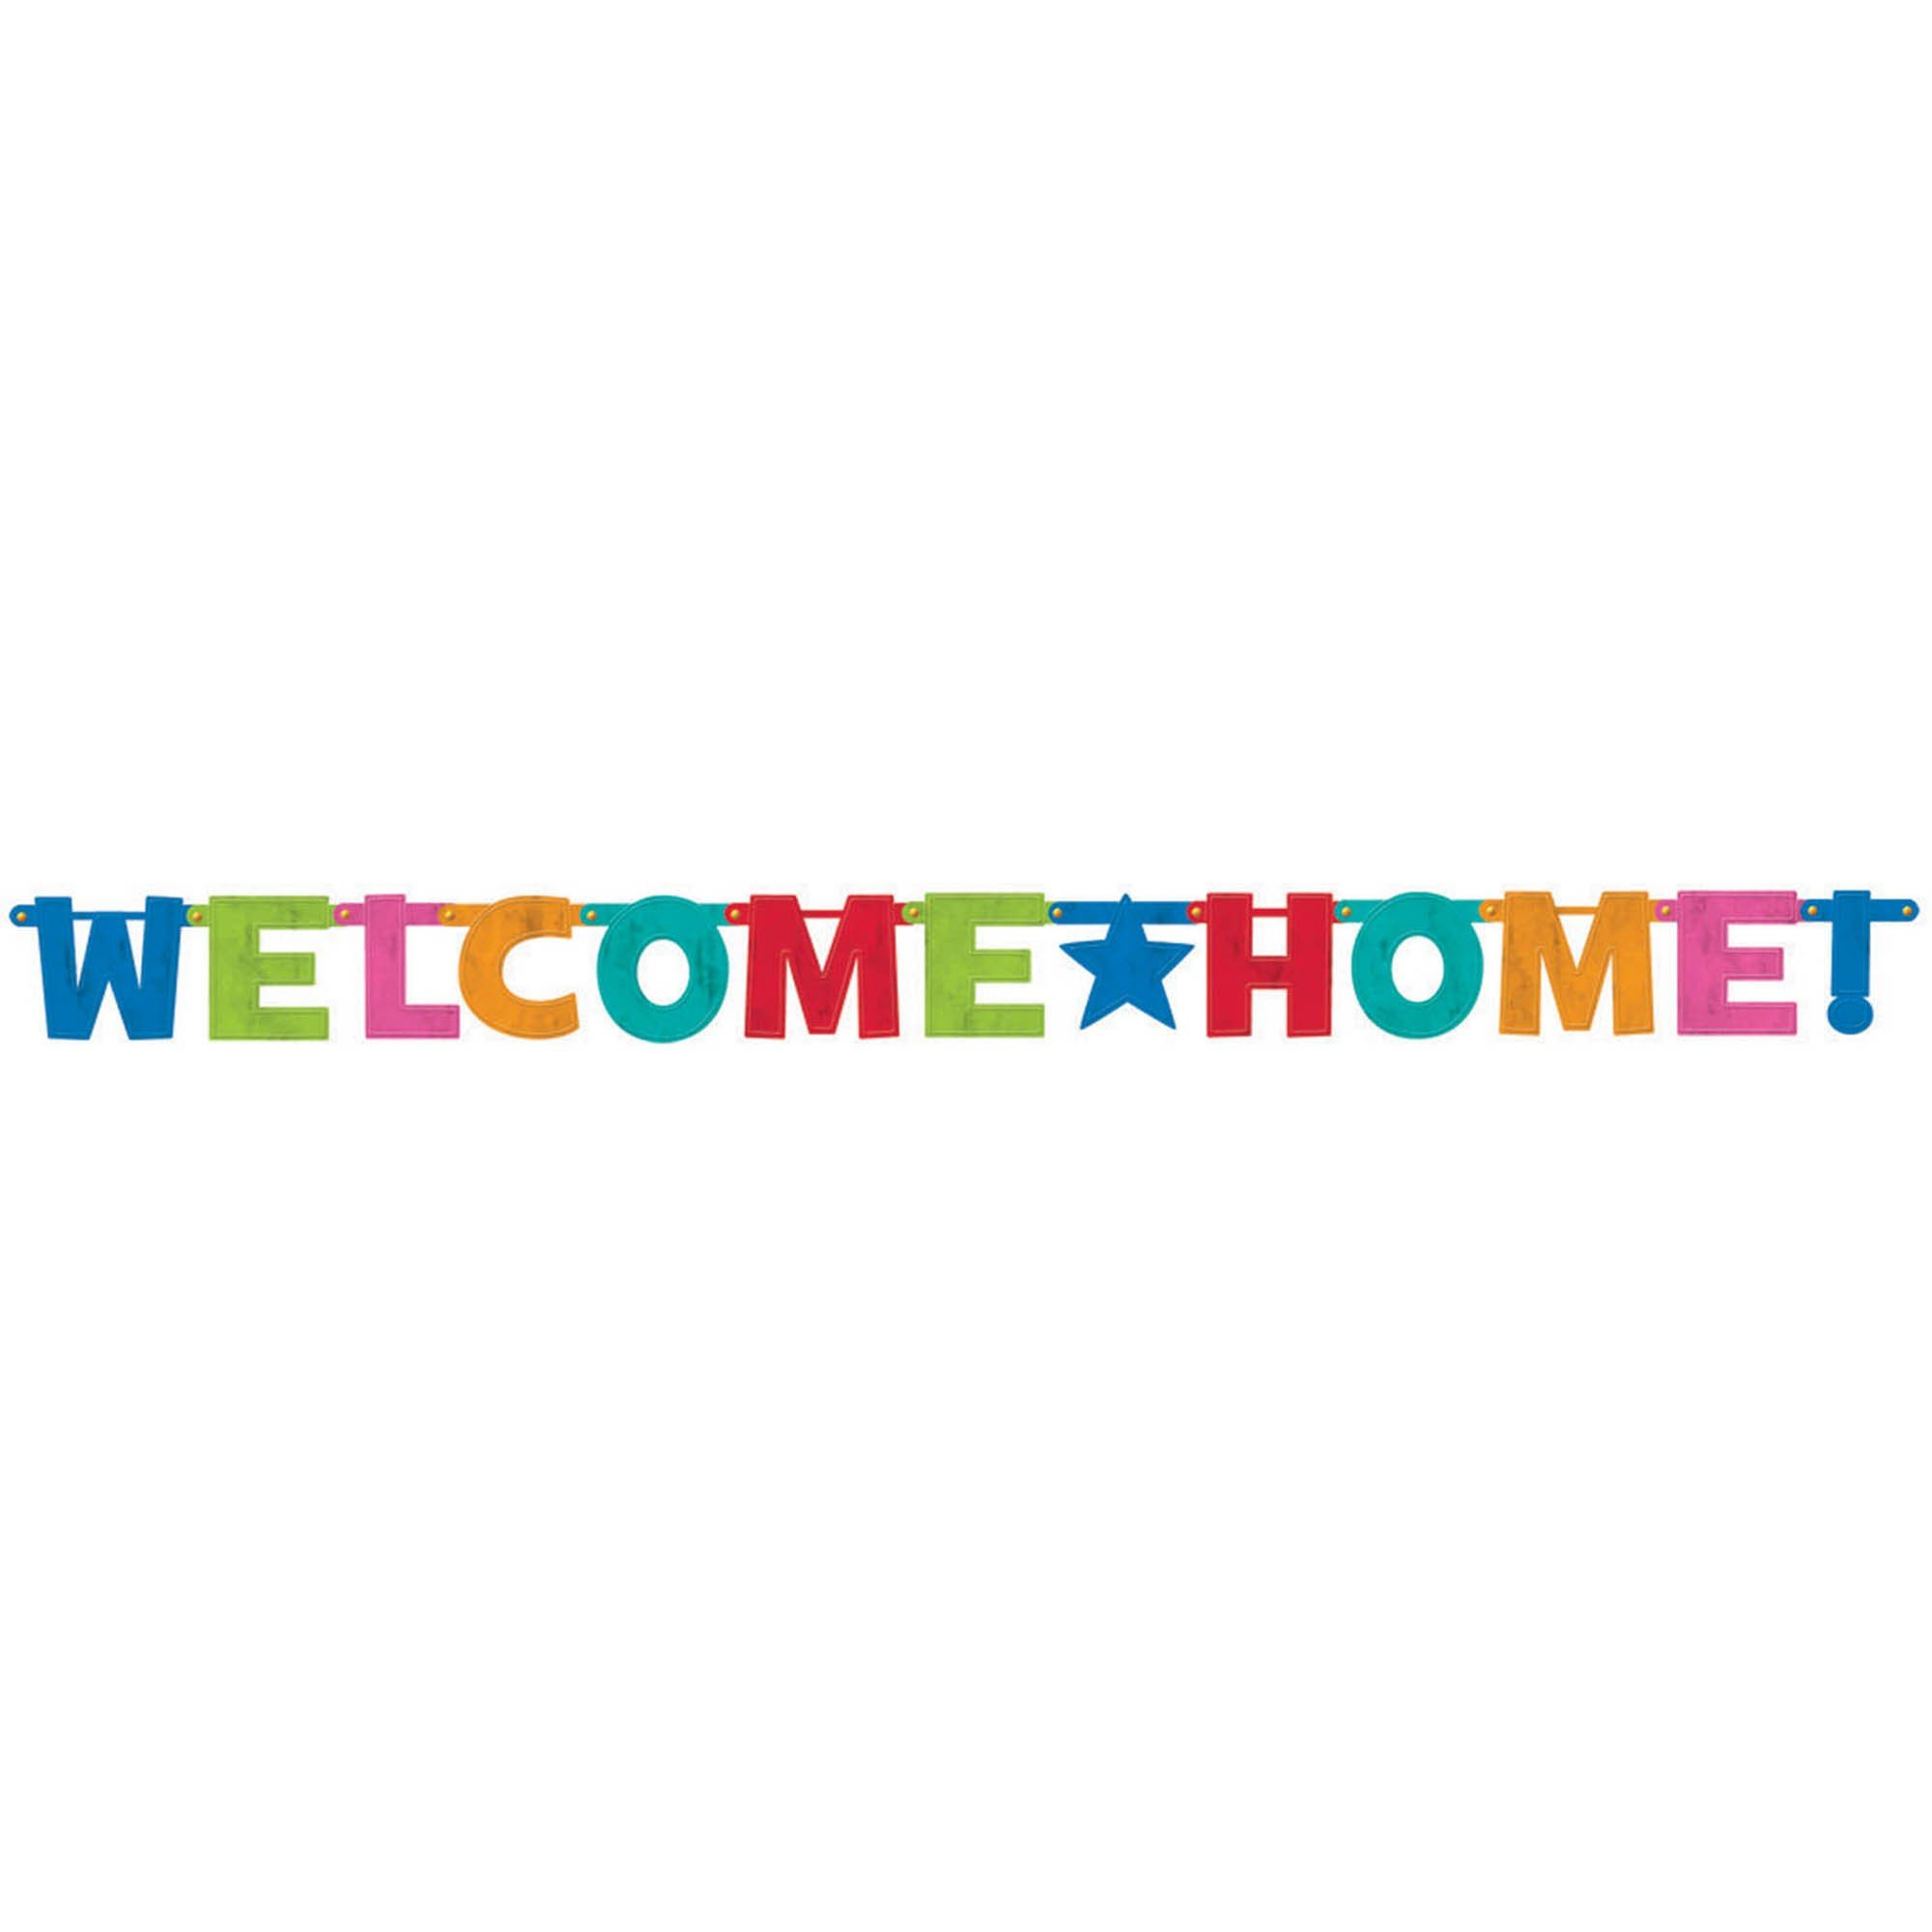 Cabana Dot Welcome Home Letter Banner